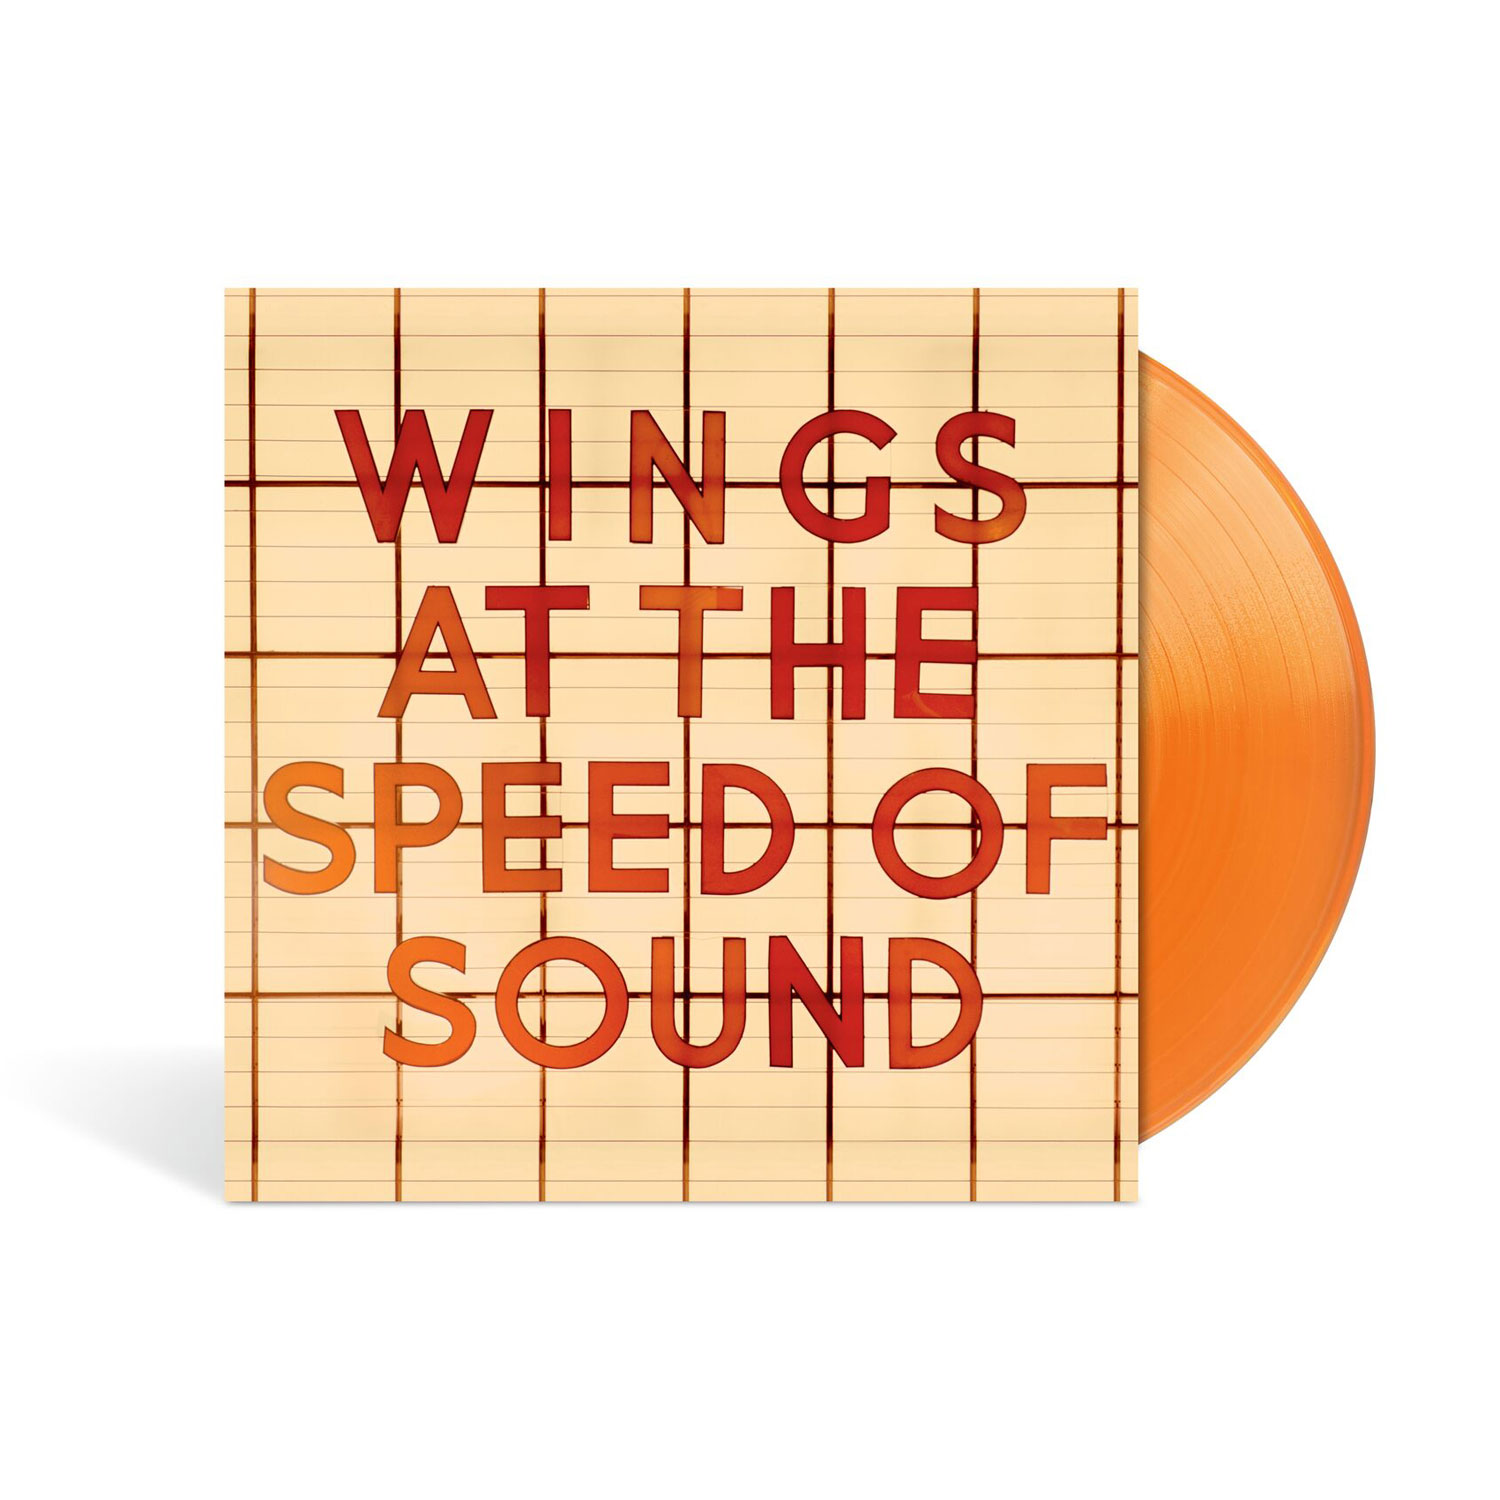 At The Speed Of Sound (Ltd./Excl. Orange Vinyl) von Wings - LP jetzt im Bravado Shop